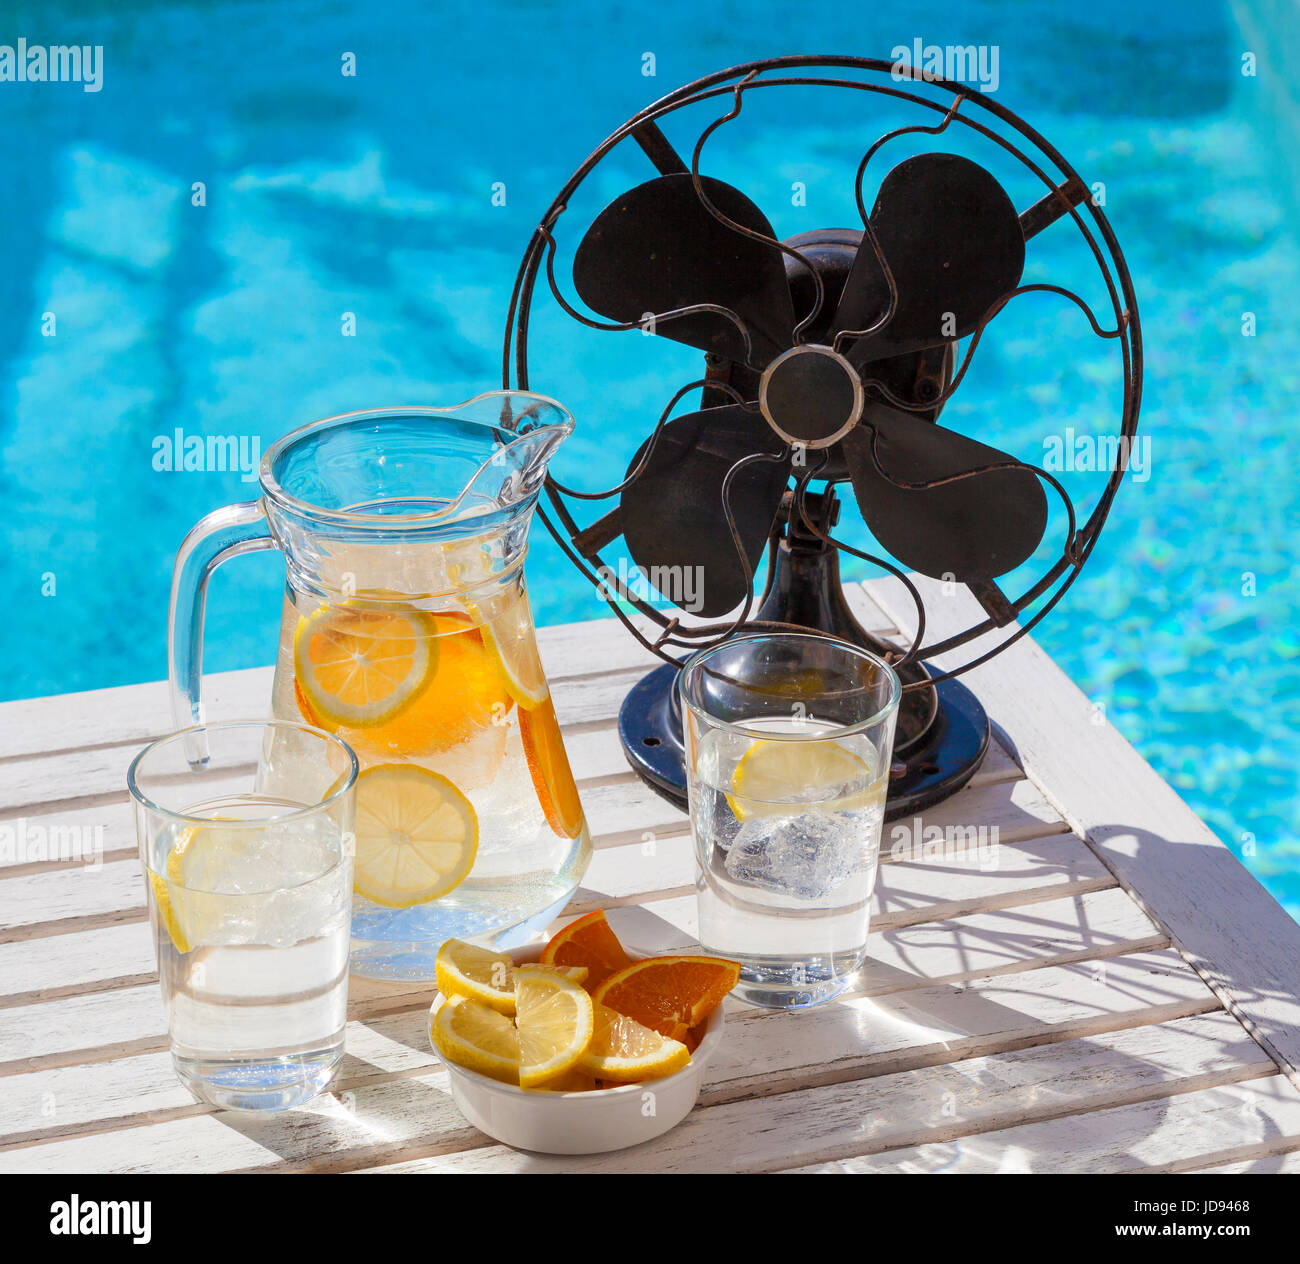 Hot summer day during a heat wave. A jar of refreshing water and a vintage fan at the pool. - Stock Image